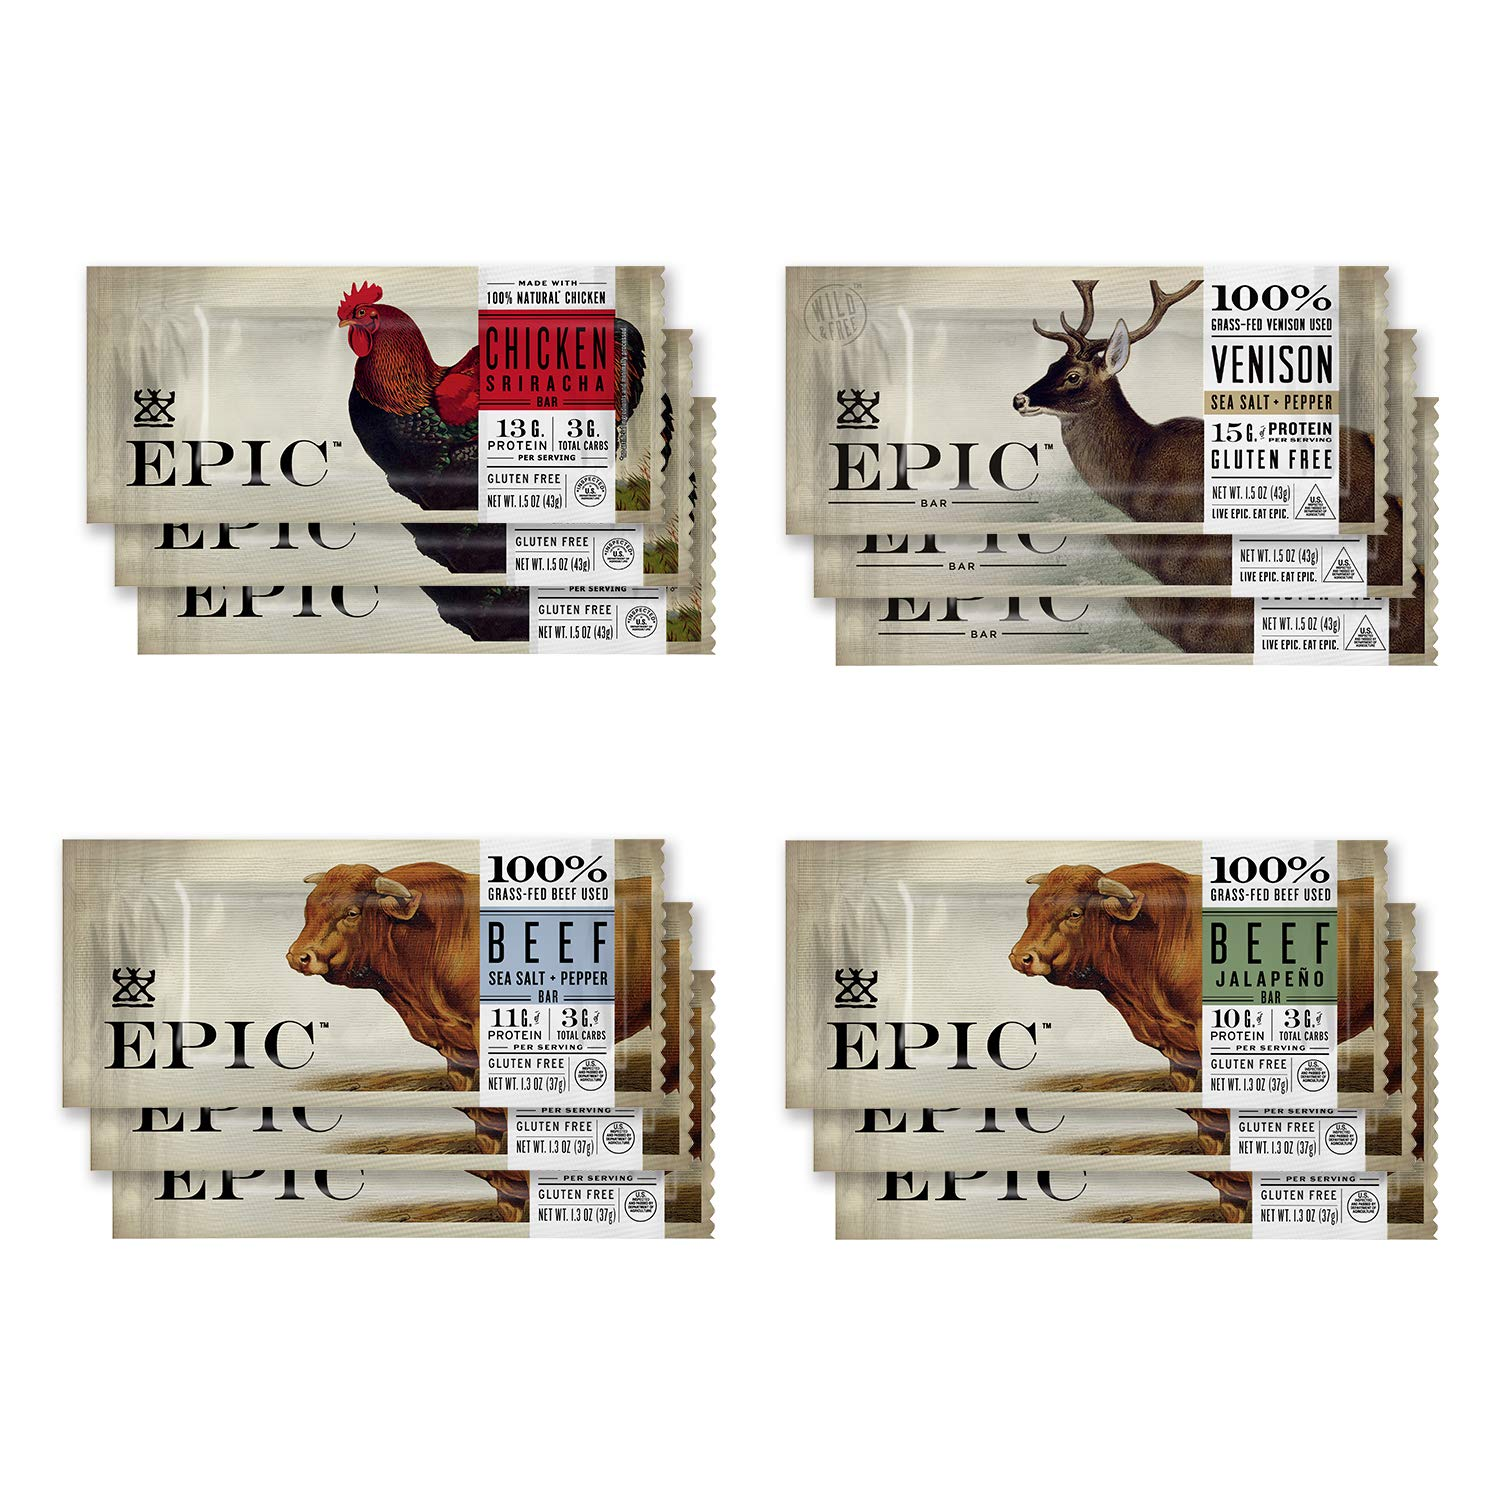 EPIC Bars, Variety Pack (Chicken, Beef, Venison), Keto-Friendly, 12 Bars